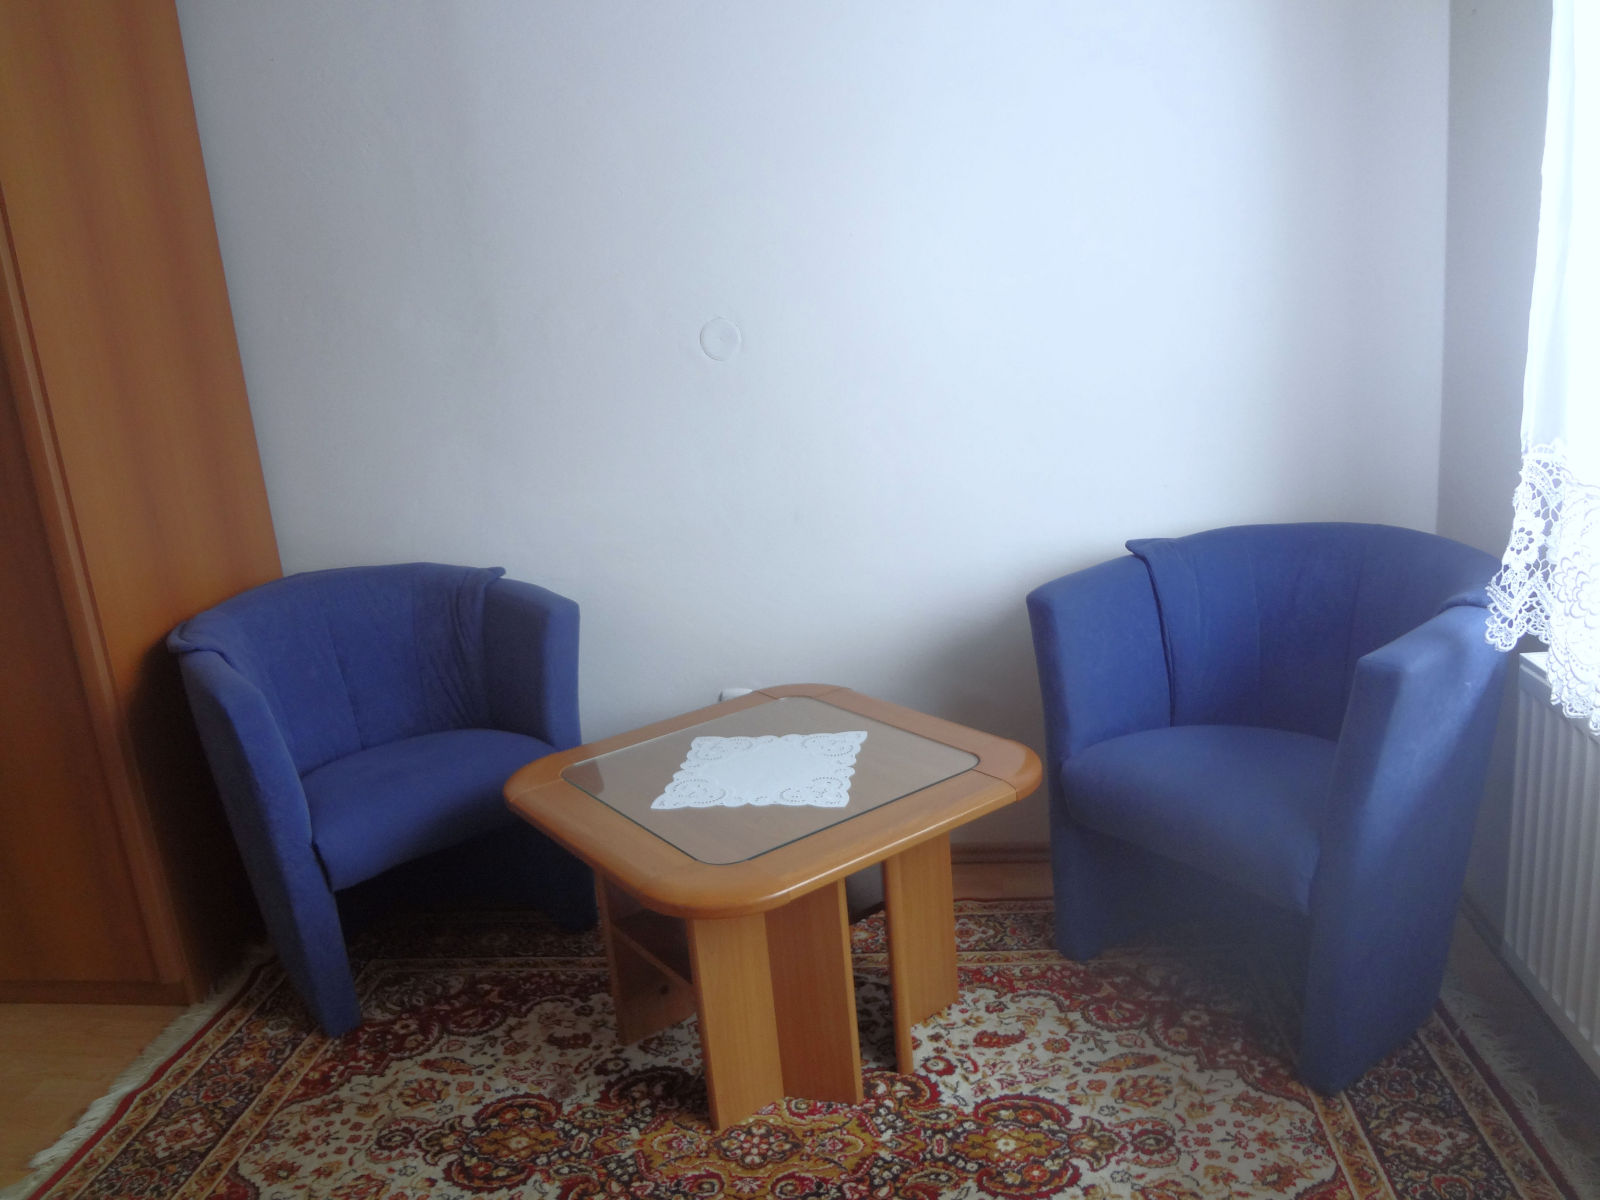 Two armchairs in the second bedroom of the Fine Stay Bled apartment in Lake Bled, Slovenia